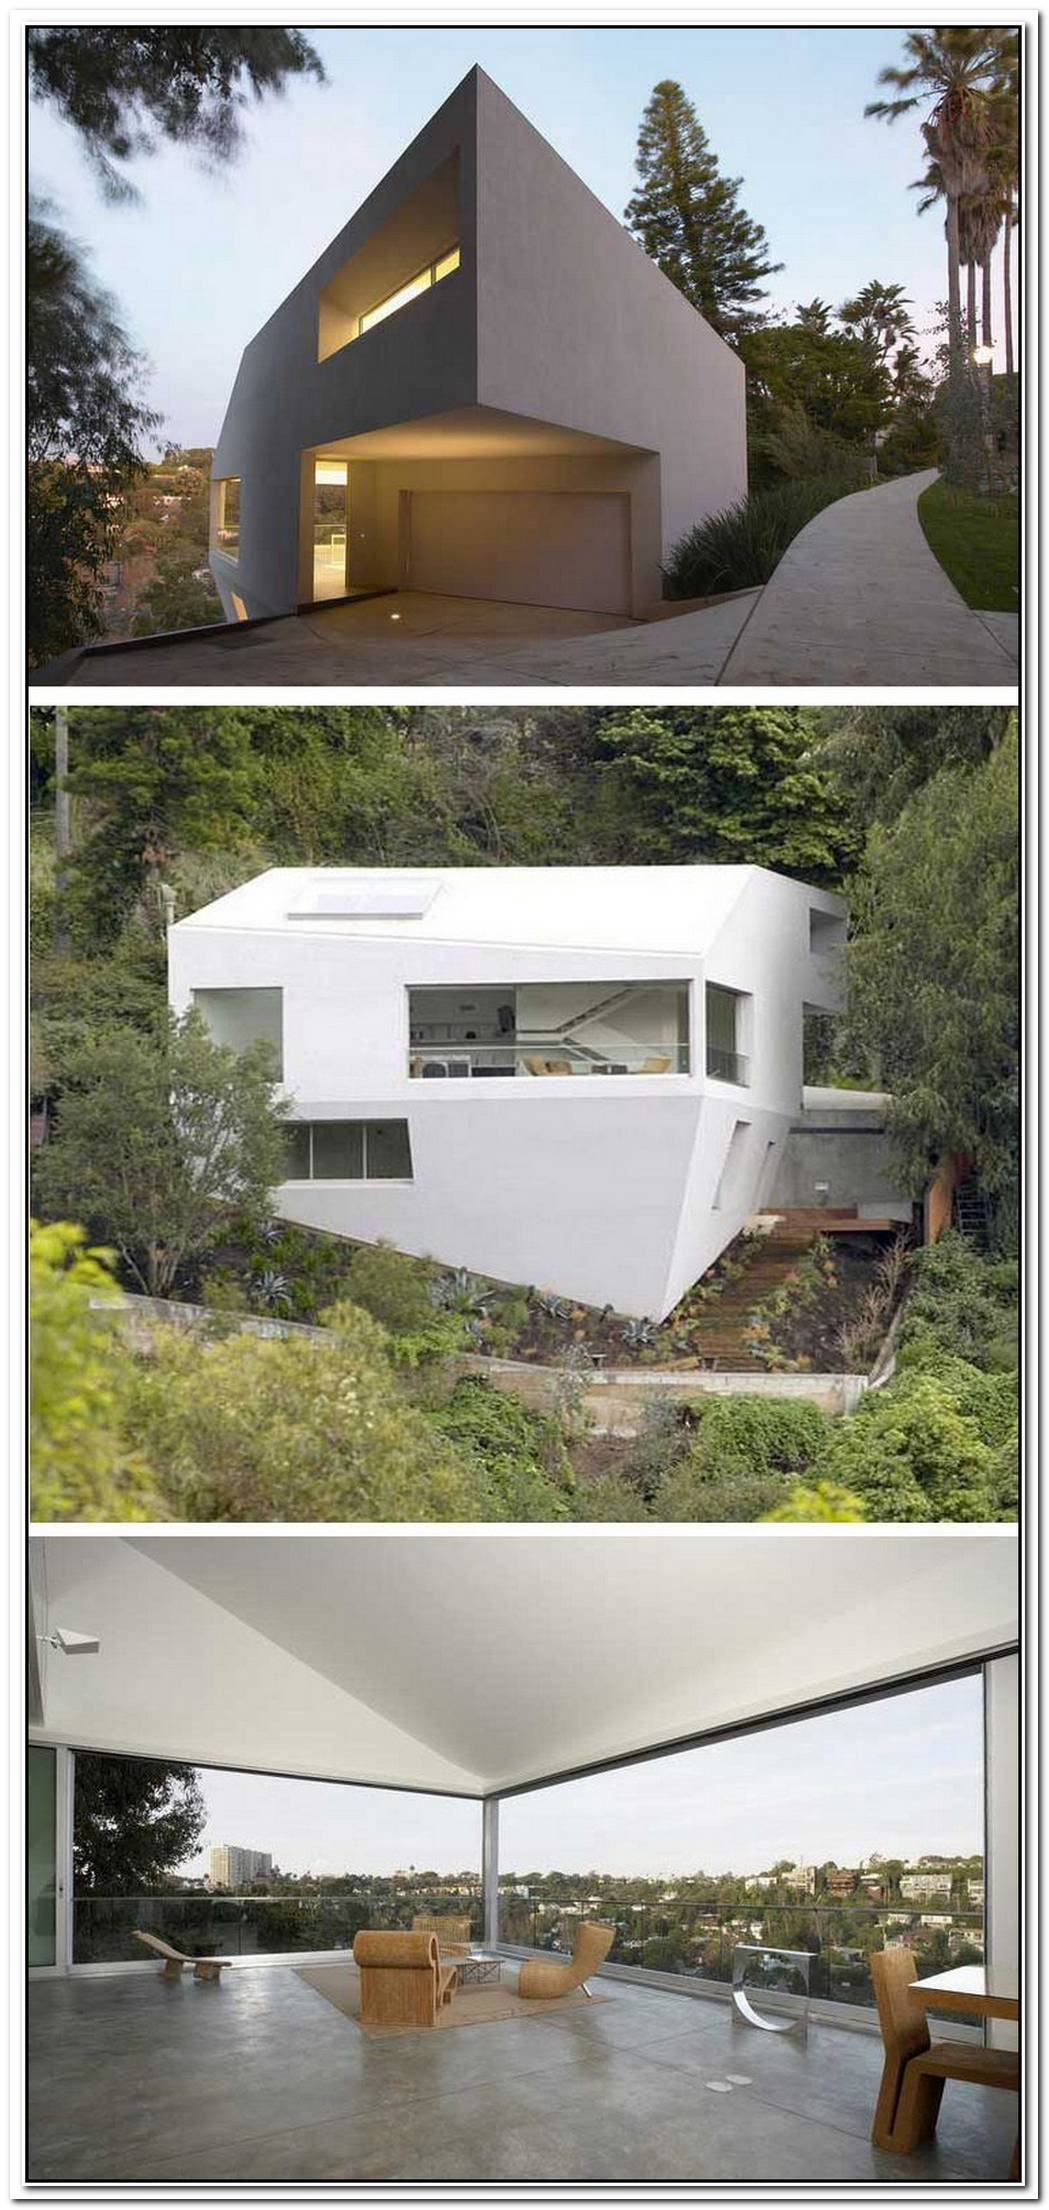 The Modern Architecture And Unusual Shape Of The Hill House